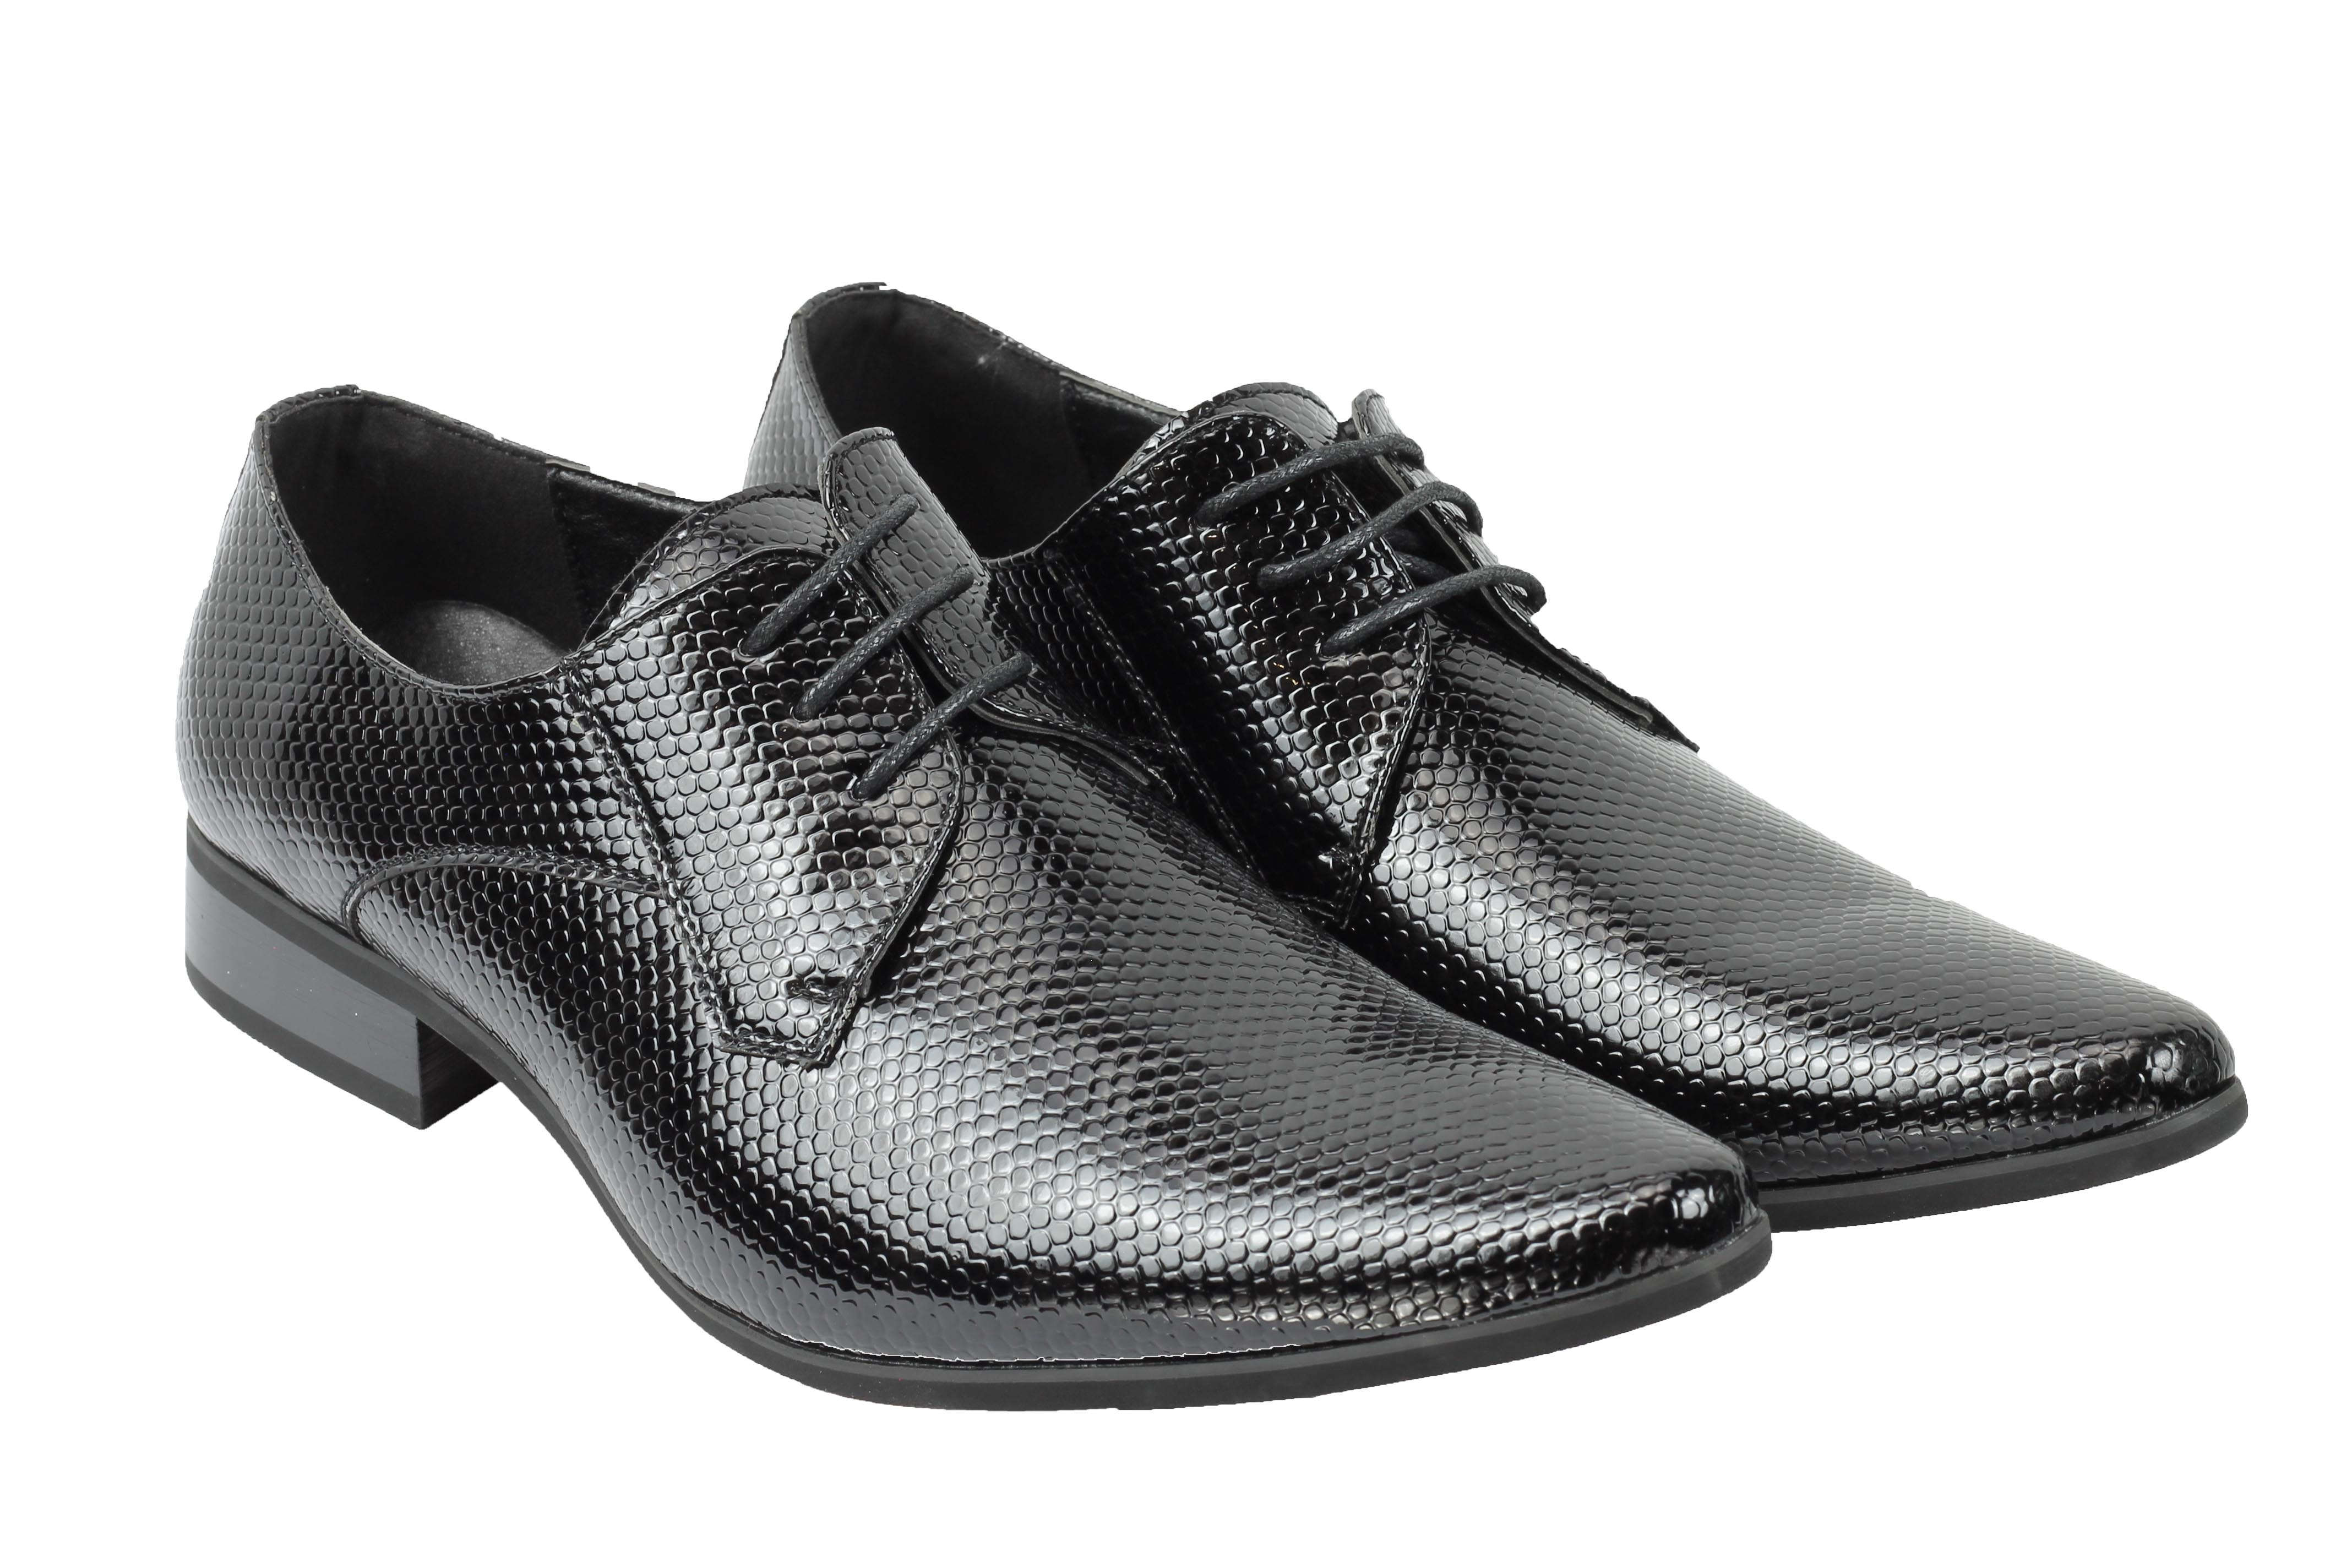 Mens-Leather-Lined-Snake-Skin-Print-Shiny-Patent-Leather-Smart-Party-Retro-Shoes thumbnail 3